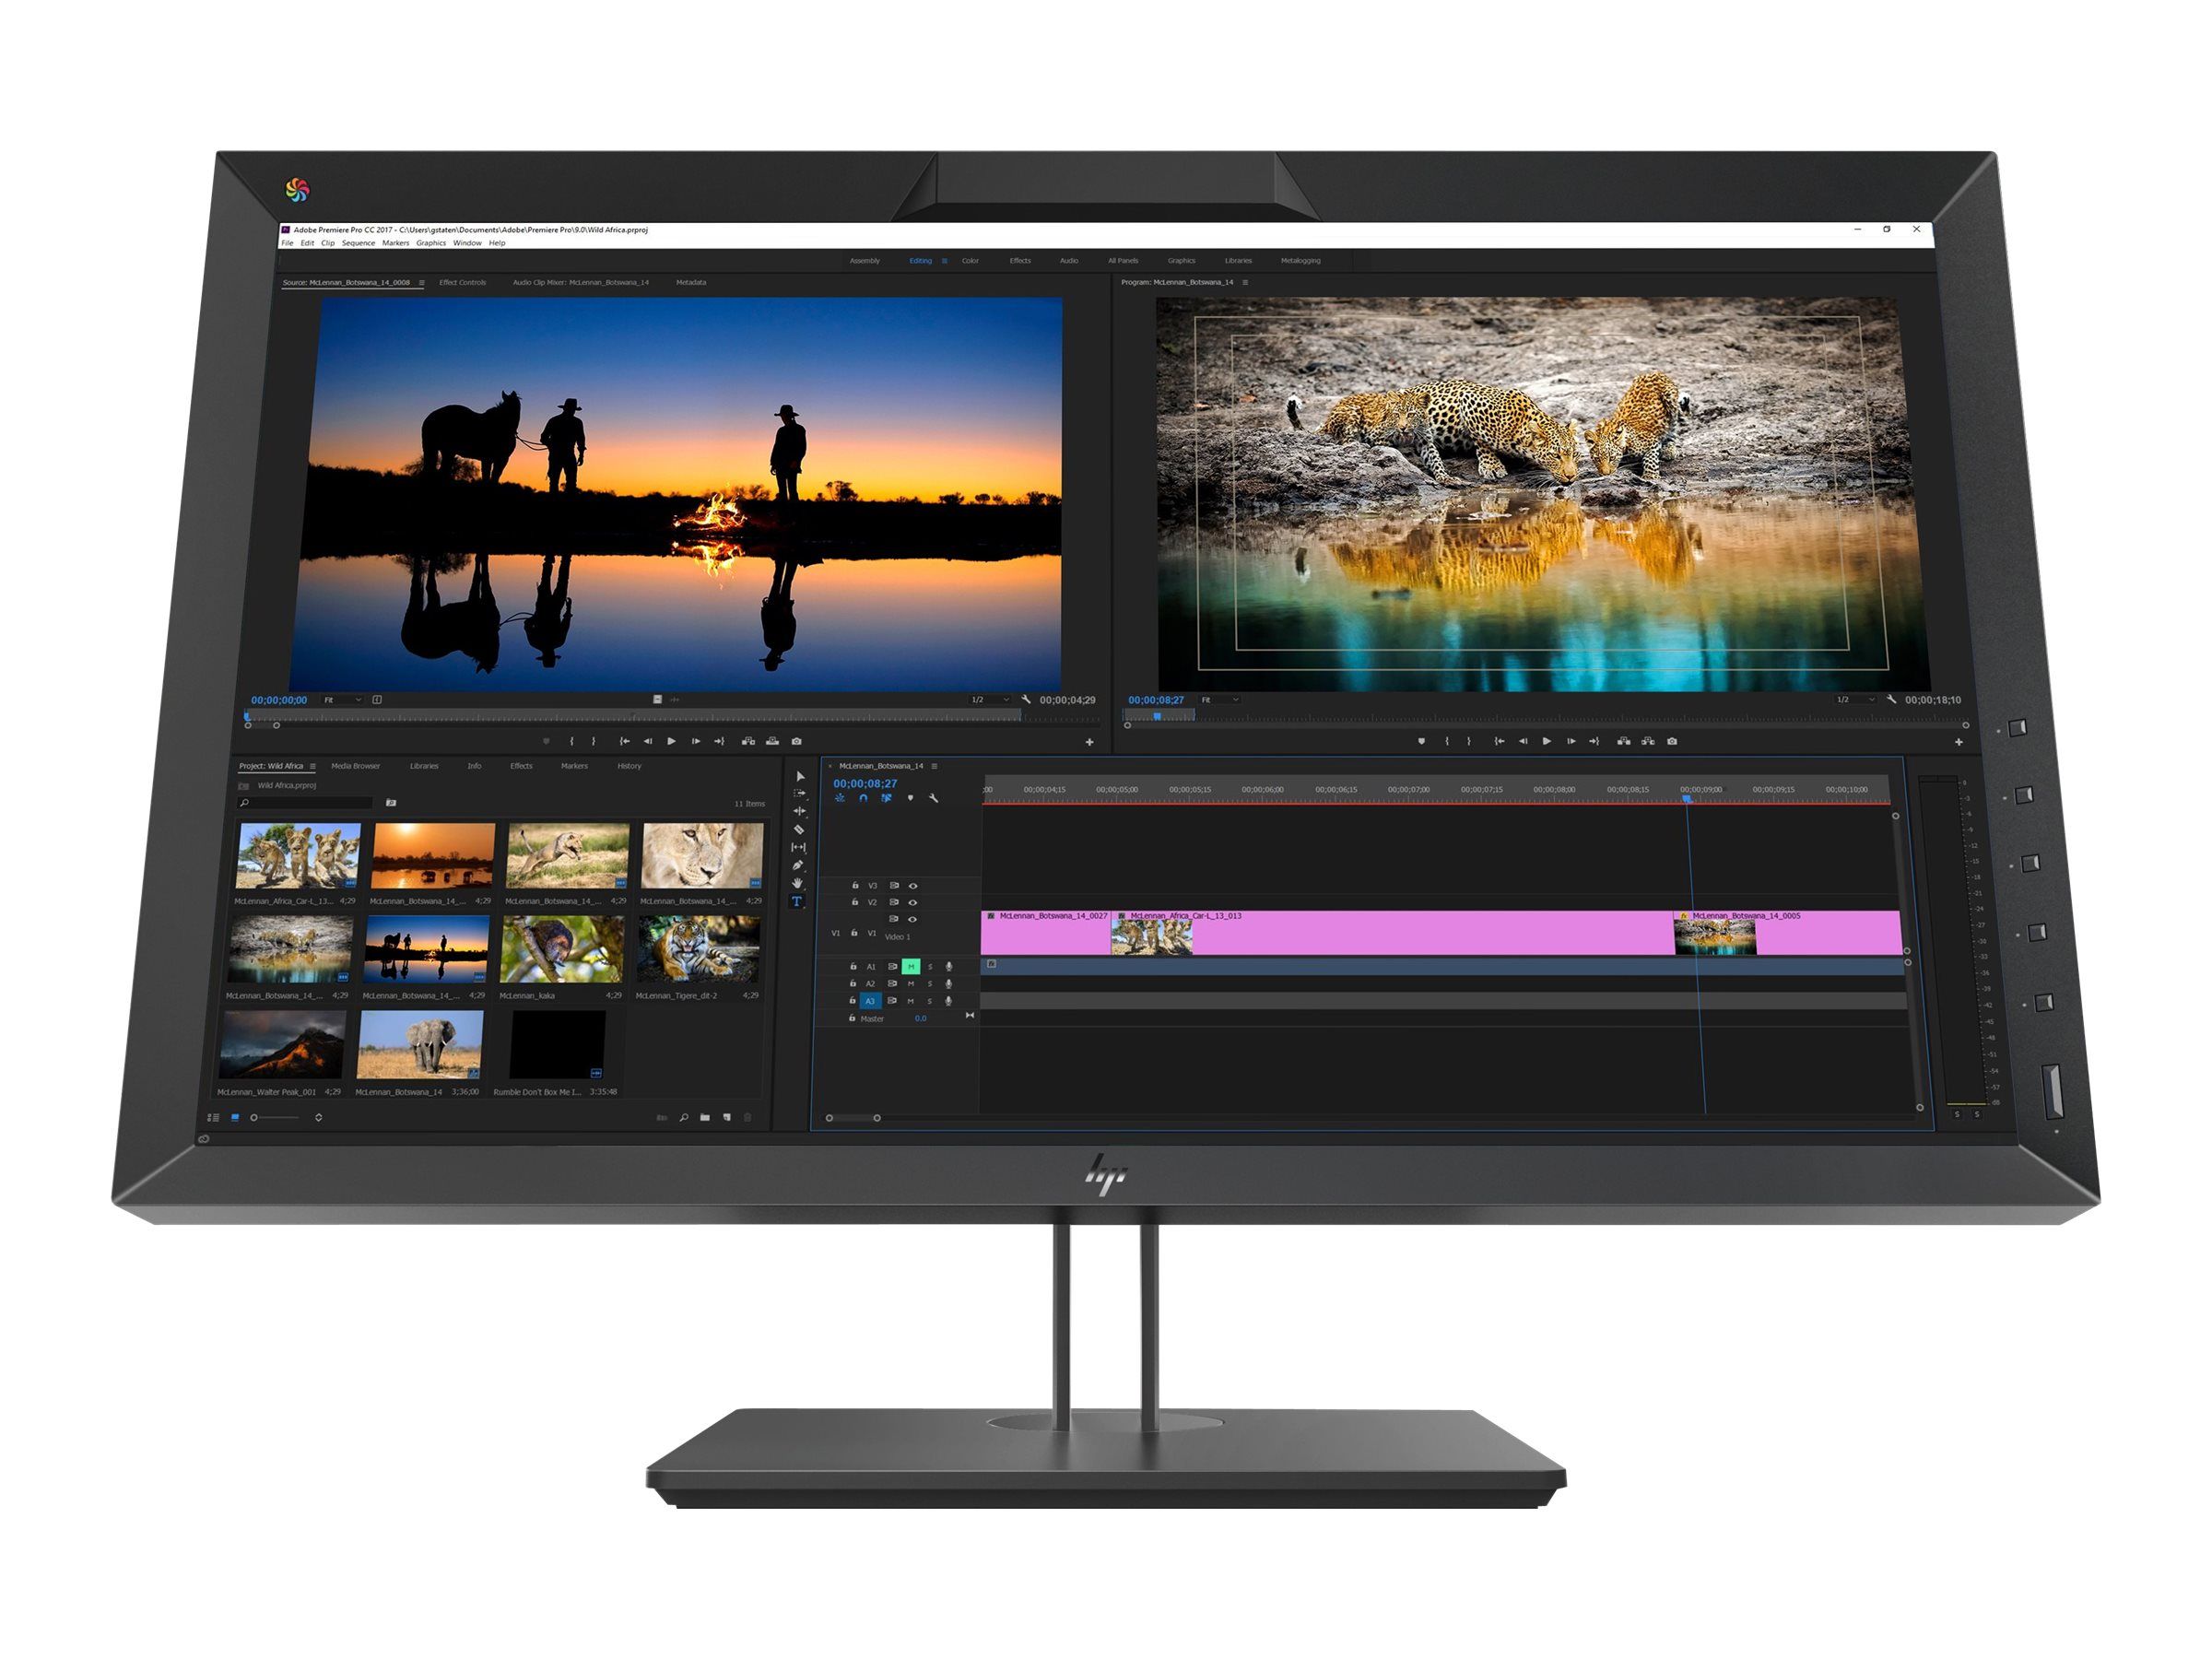 """HP DreamColor Z27x G2 Studio Display - LED monitor - 27"""""""